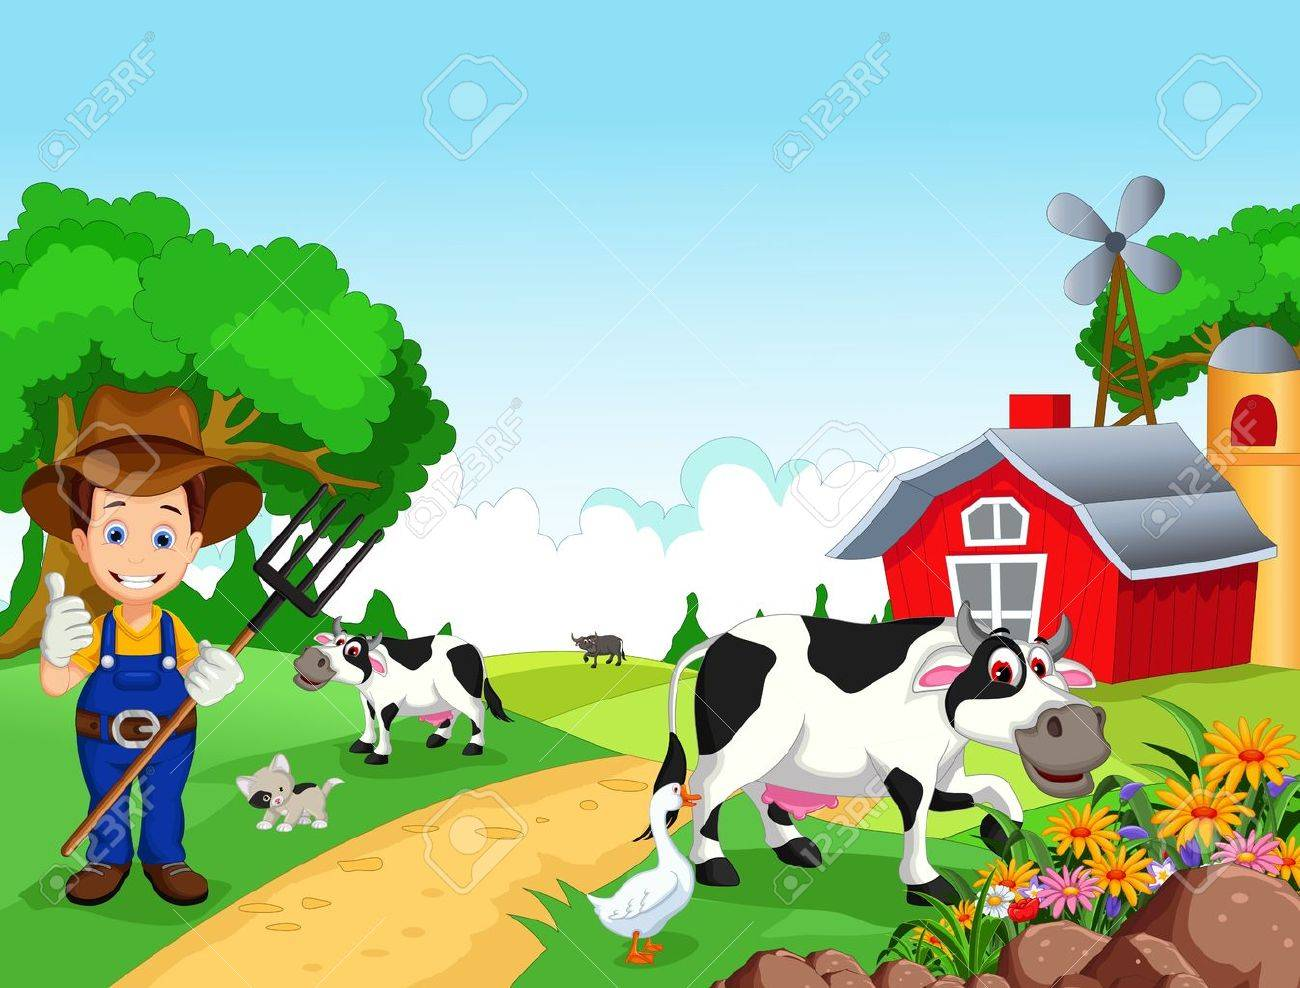 Farm background with farmer and animals - 41506191